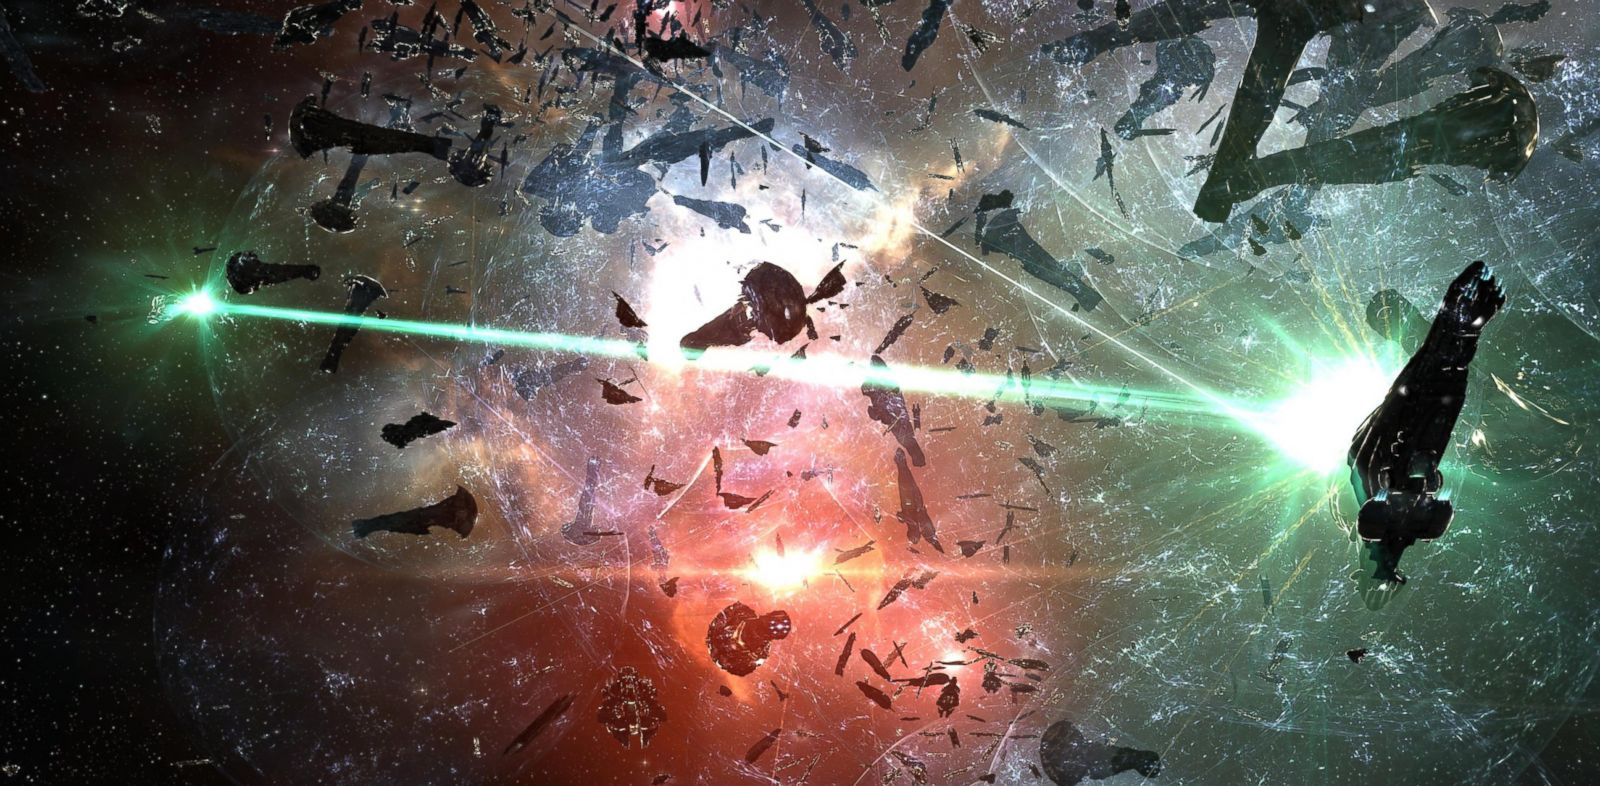 PHOTO: A massive battle in EVE Online caused over $300,000 worth of in-game damage.